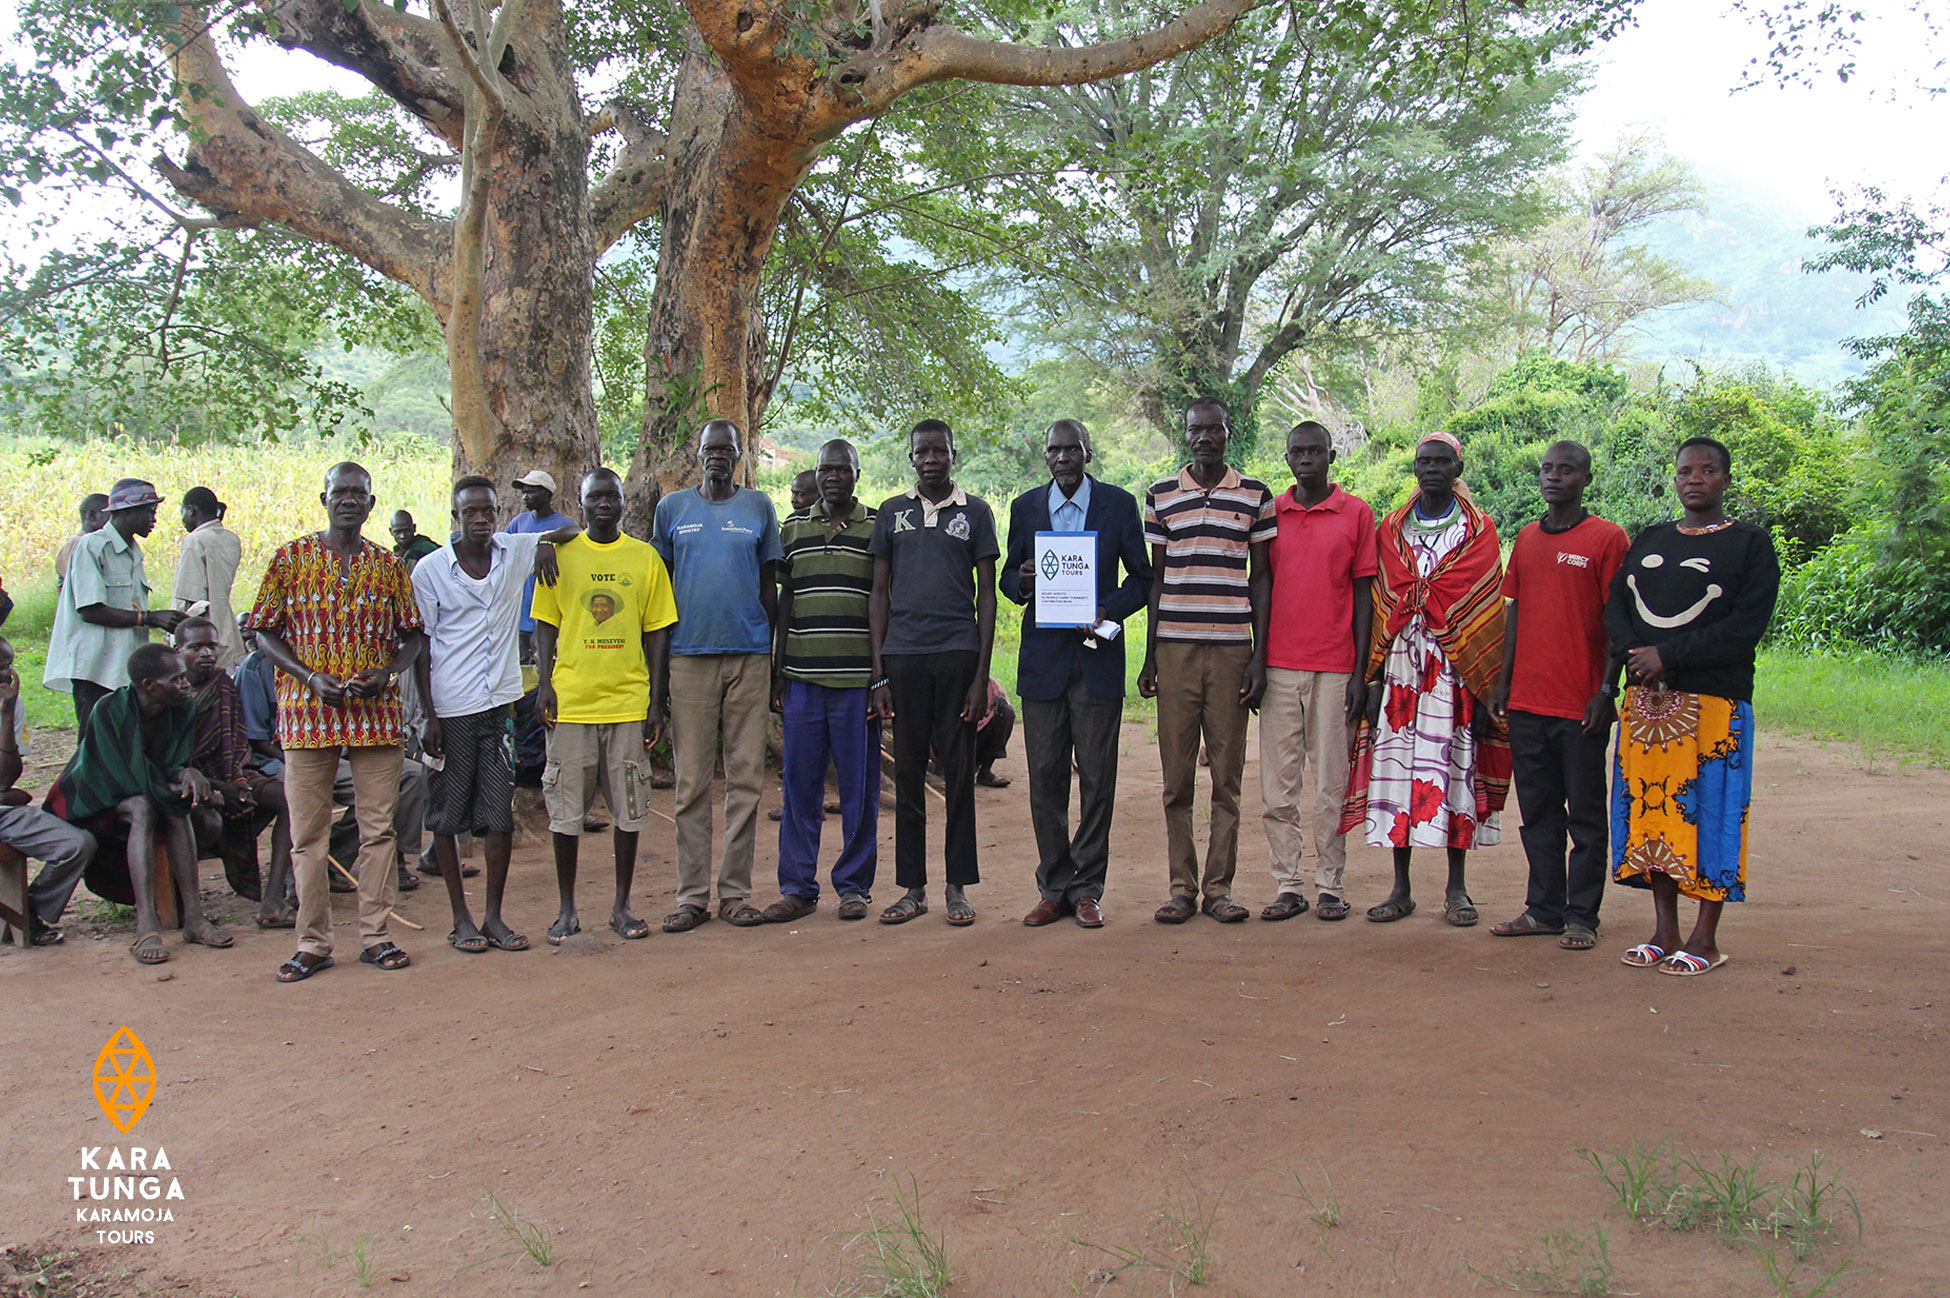 kara-tunga-mount-moroto-tourism-group